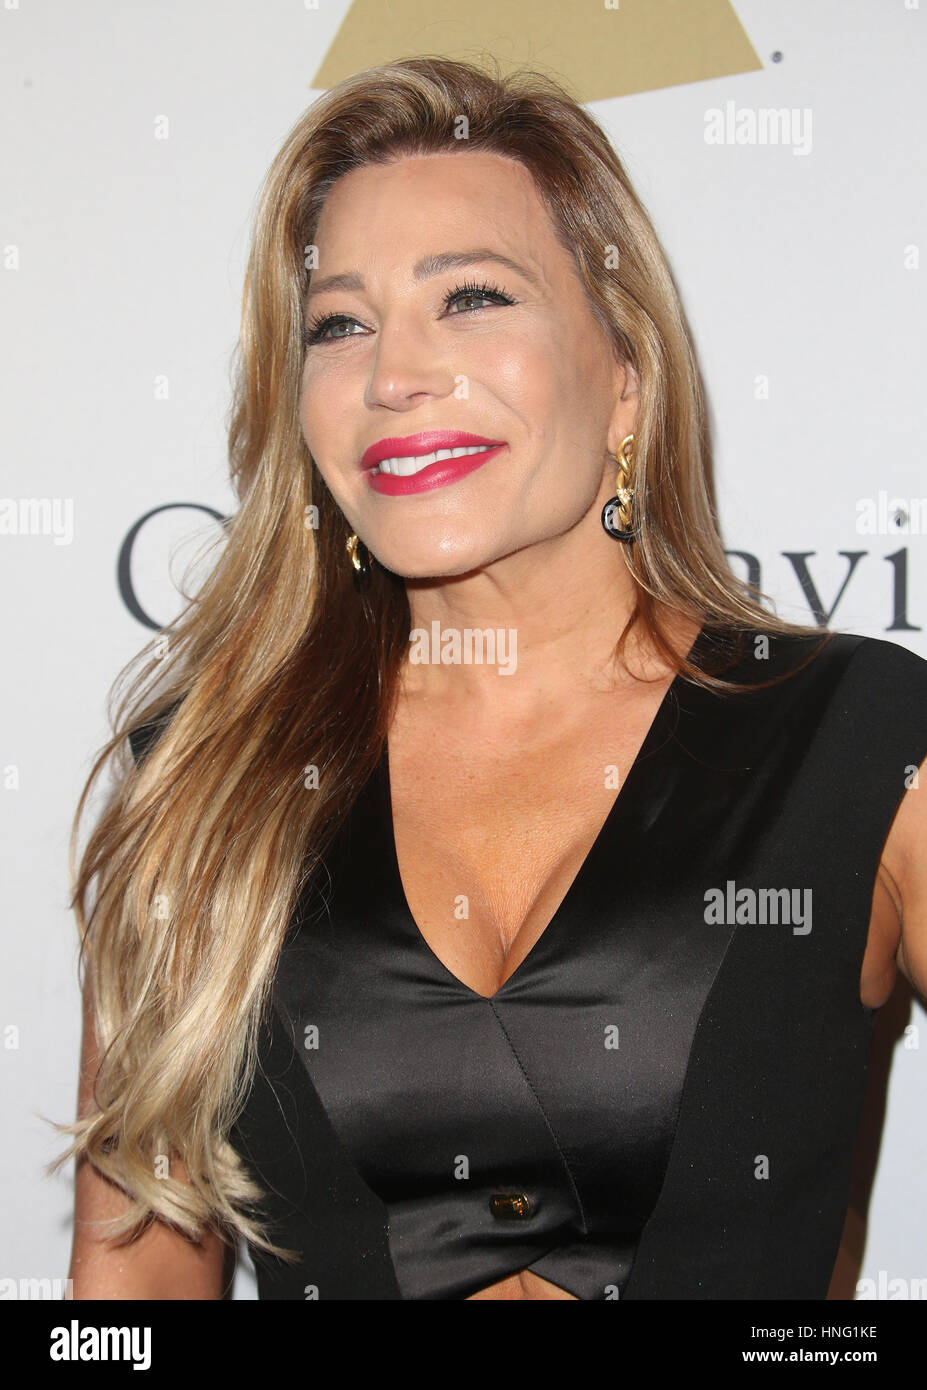 Hacked Taylor Dayne nude photos 2019